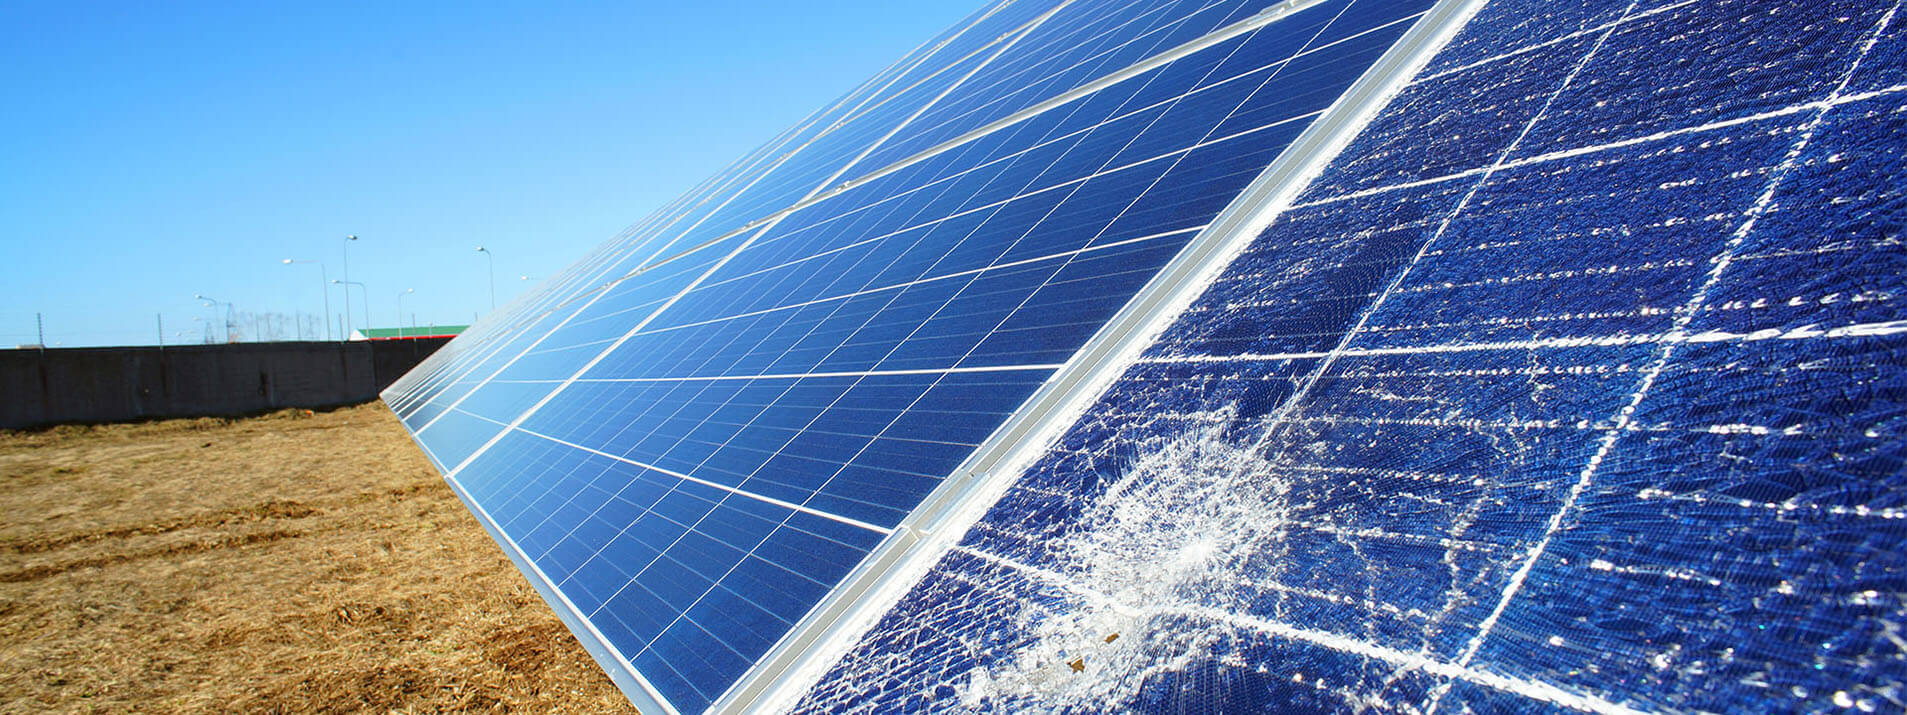 Rio Rancho Custom Solar Photovoltaic Systems, Solar Thermal System Installation and Solar Thermal System Customization